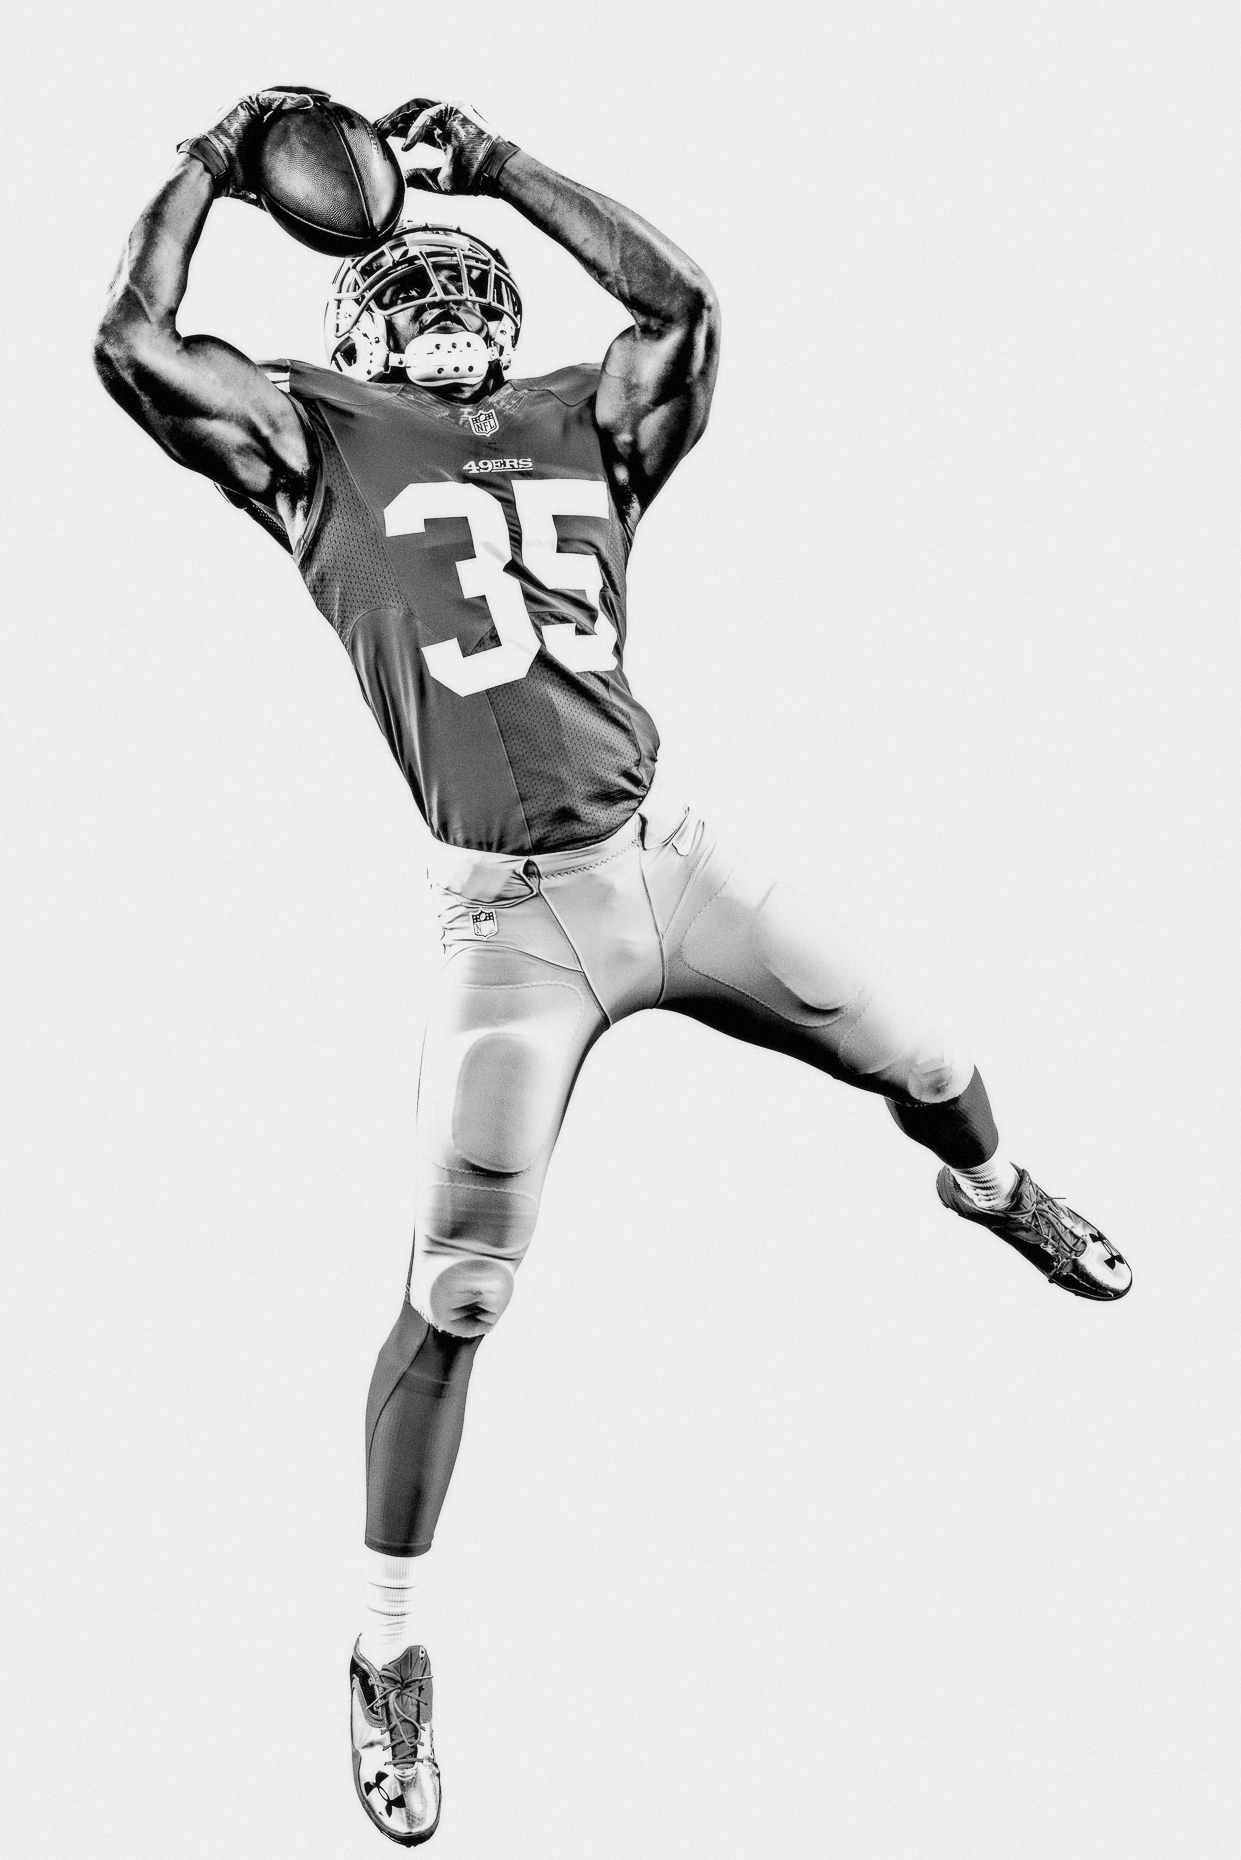 NFL Verizon Eric Reid catches football mid air San Francisco 49ers in a white studio by Andy Batt